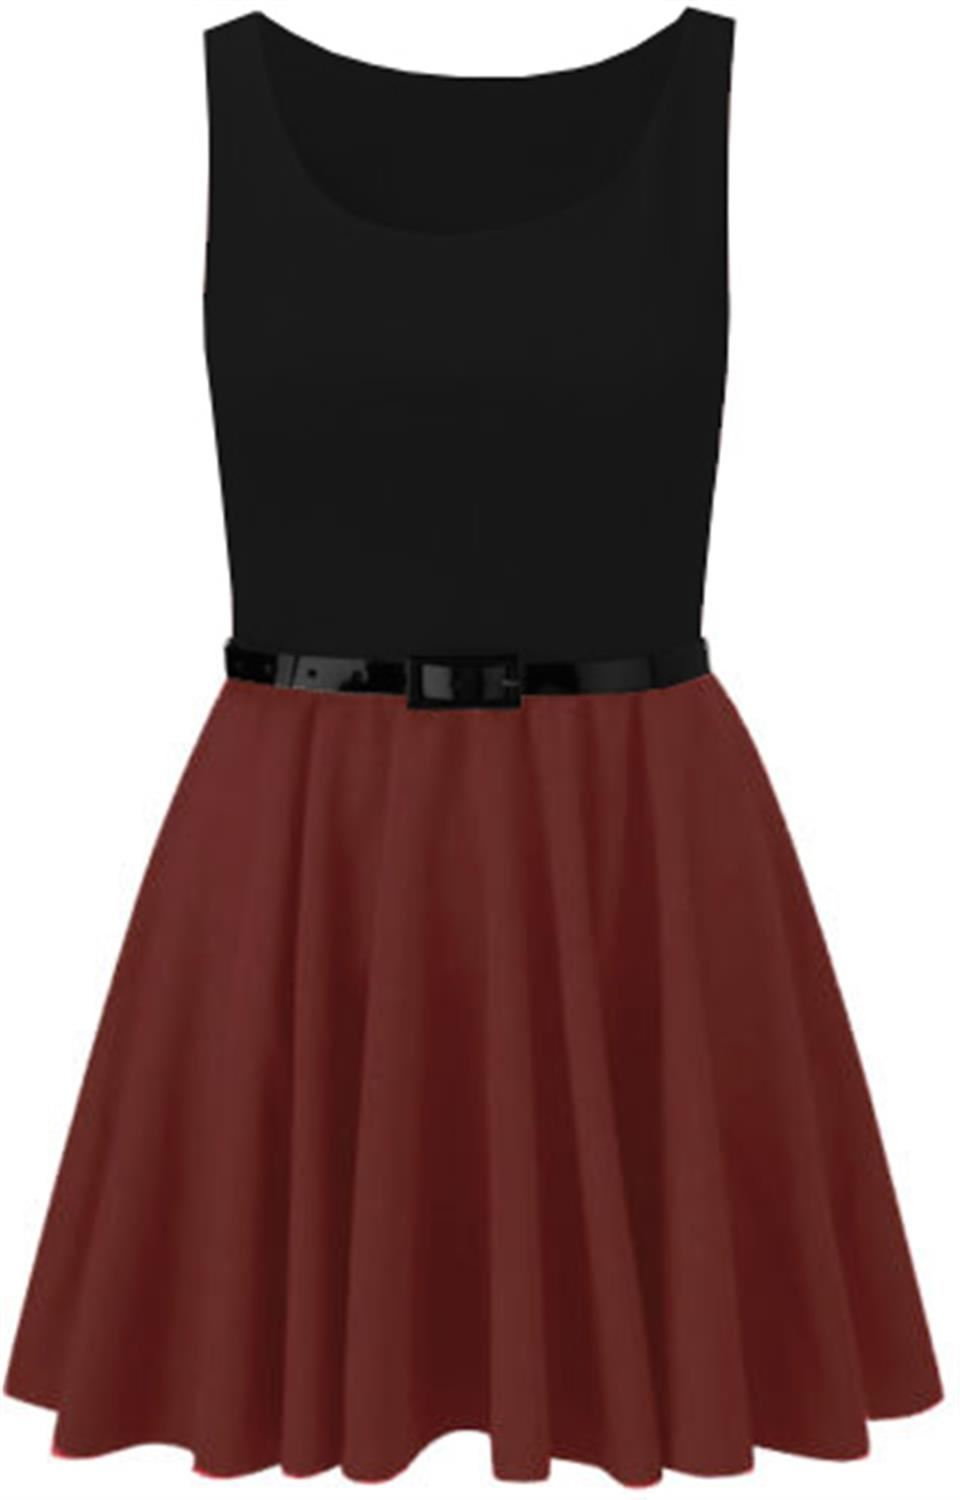 kleid andere farbe